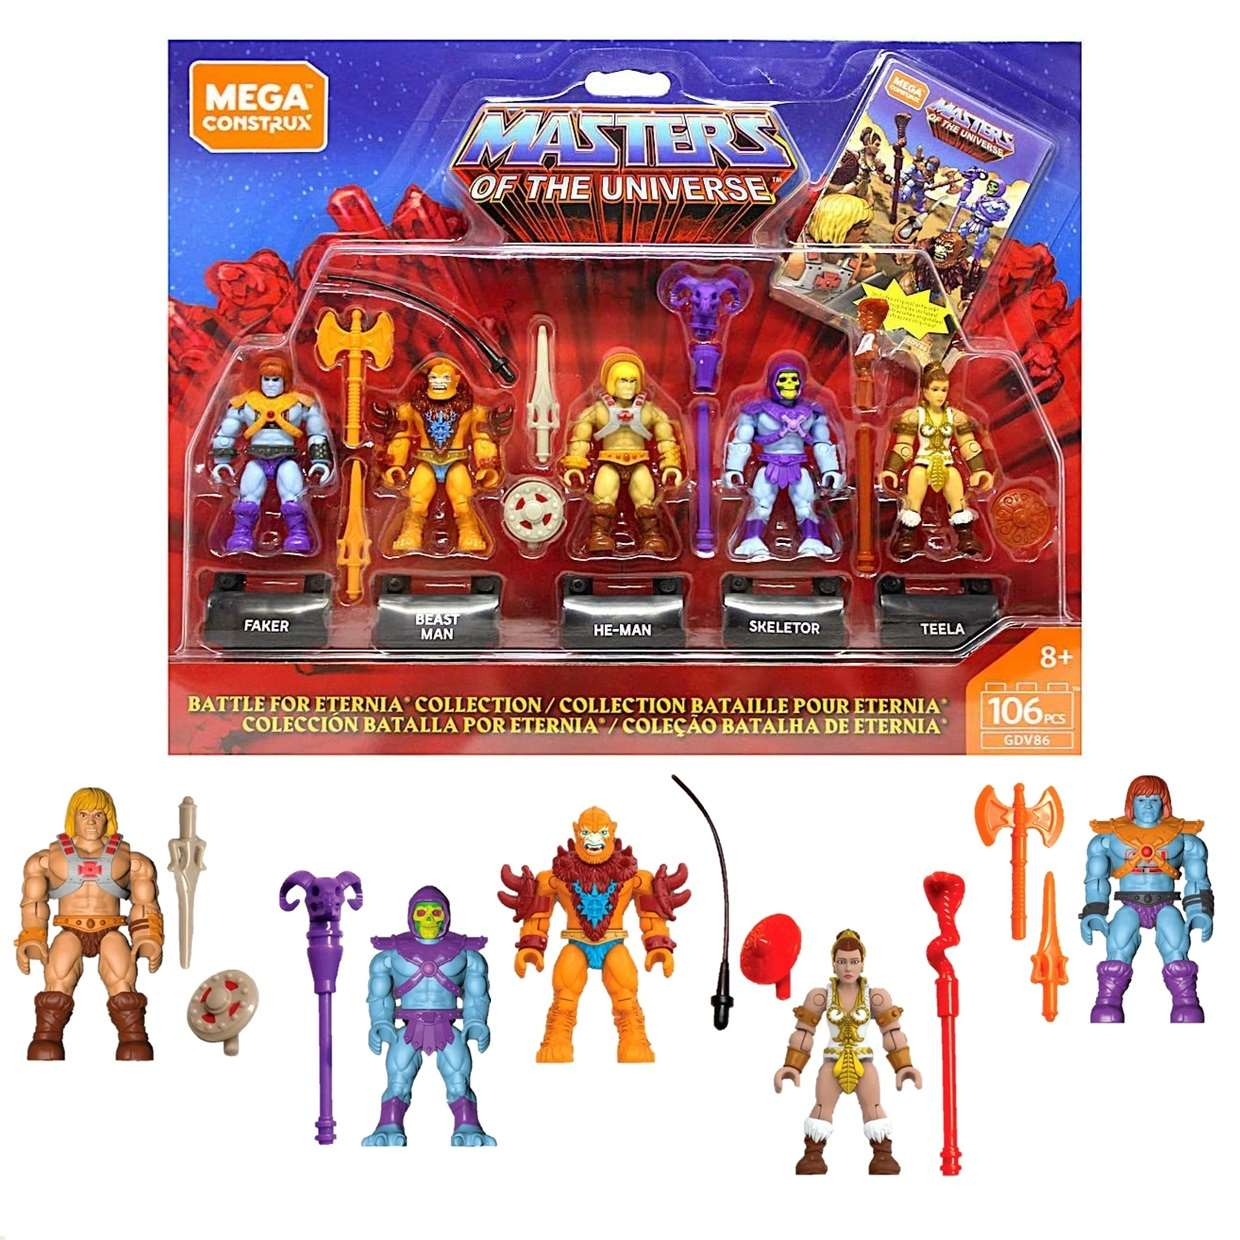 He Man Masters Of The Universe Battle For Eternia Collection